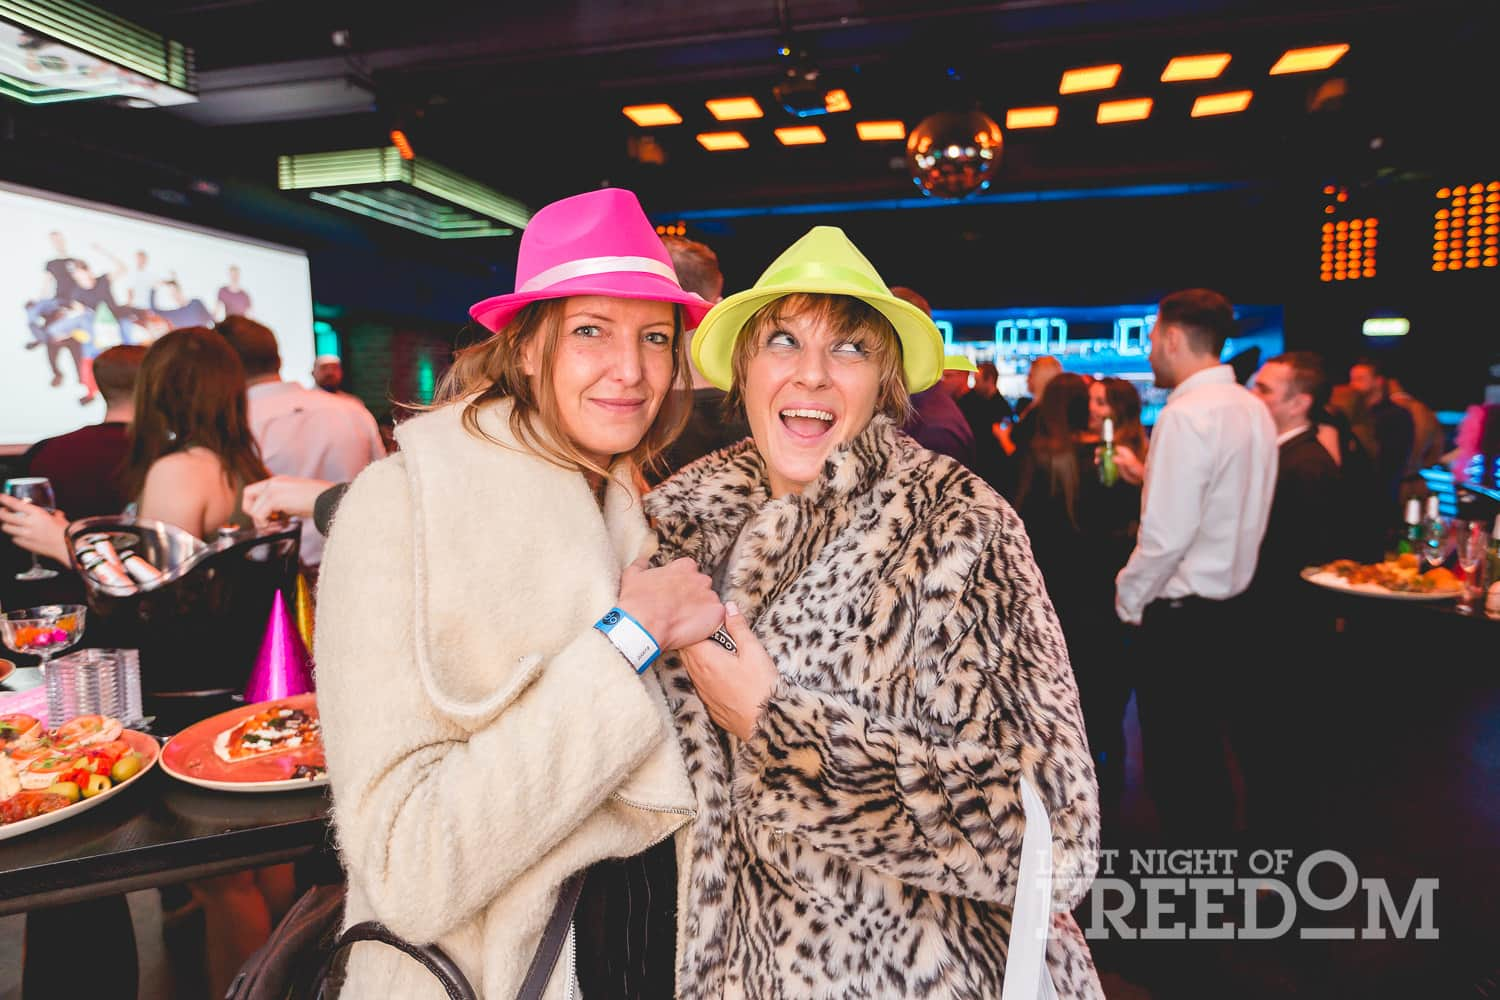 Two women posing in colourful hats and coats in a bar, with others in the background